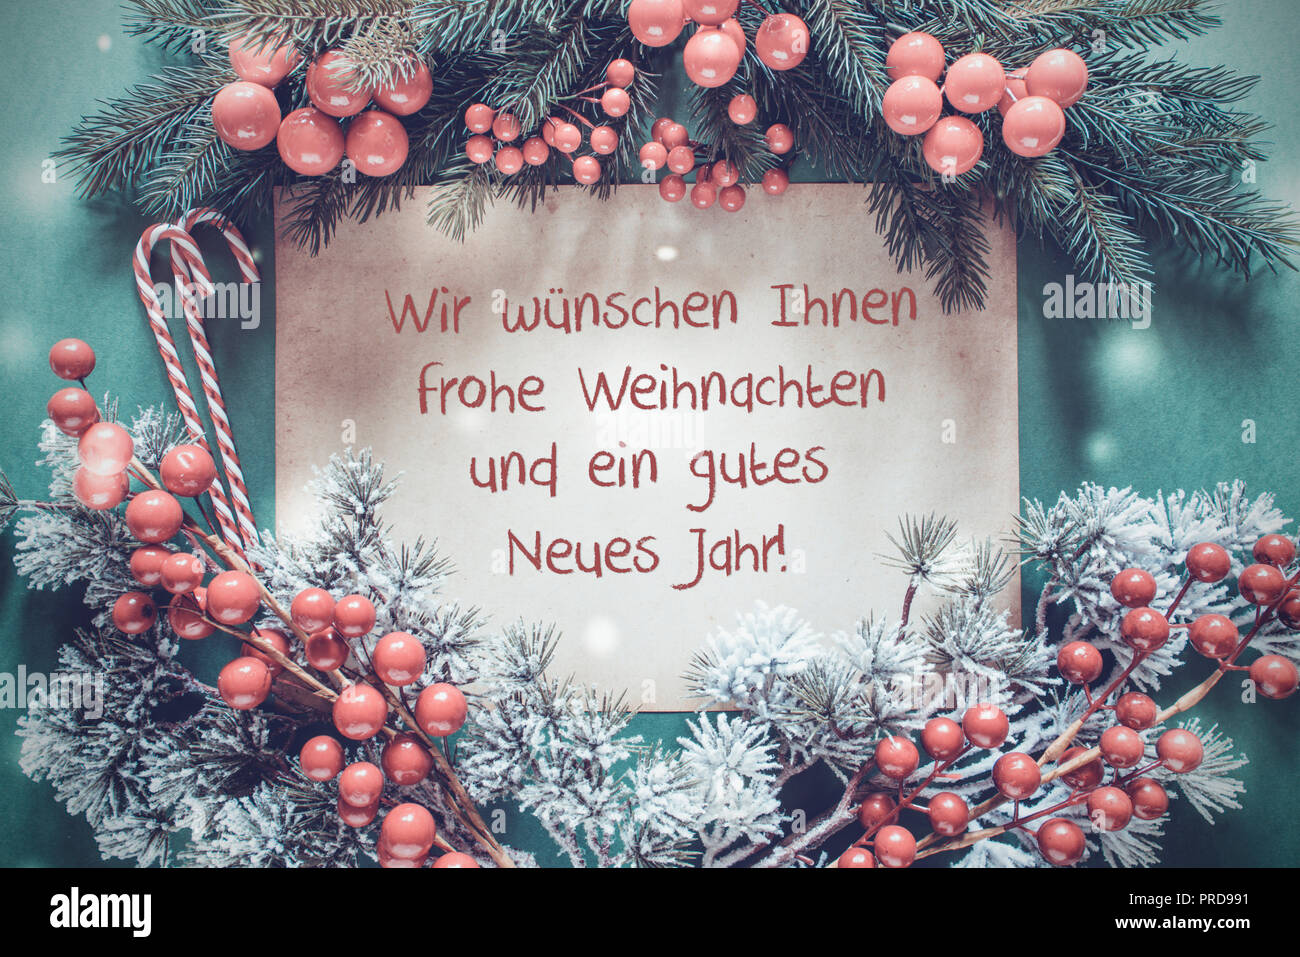 Christmas Garland, Gutes Neues Jahr Means Happy New Year Stock Photo ...